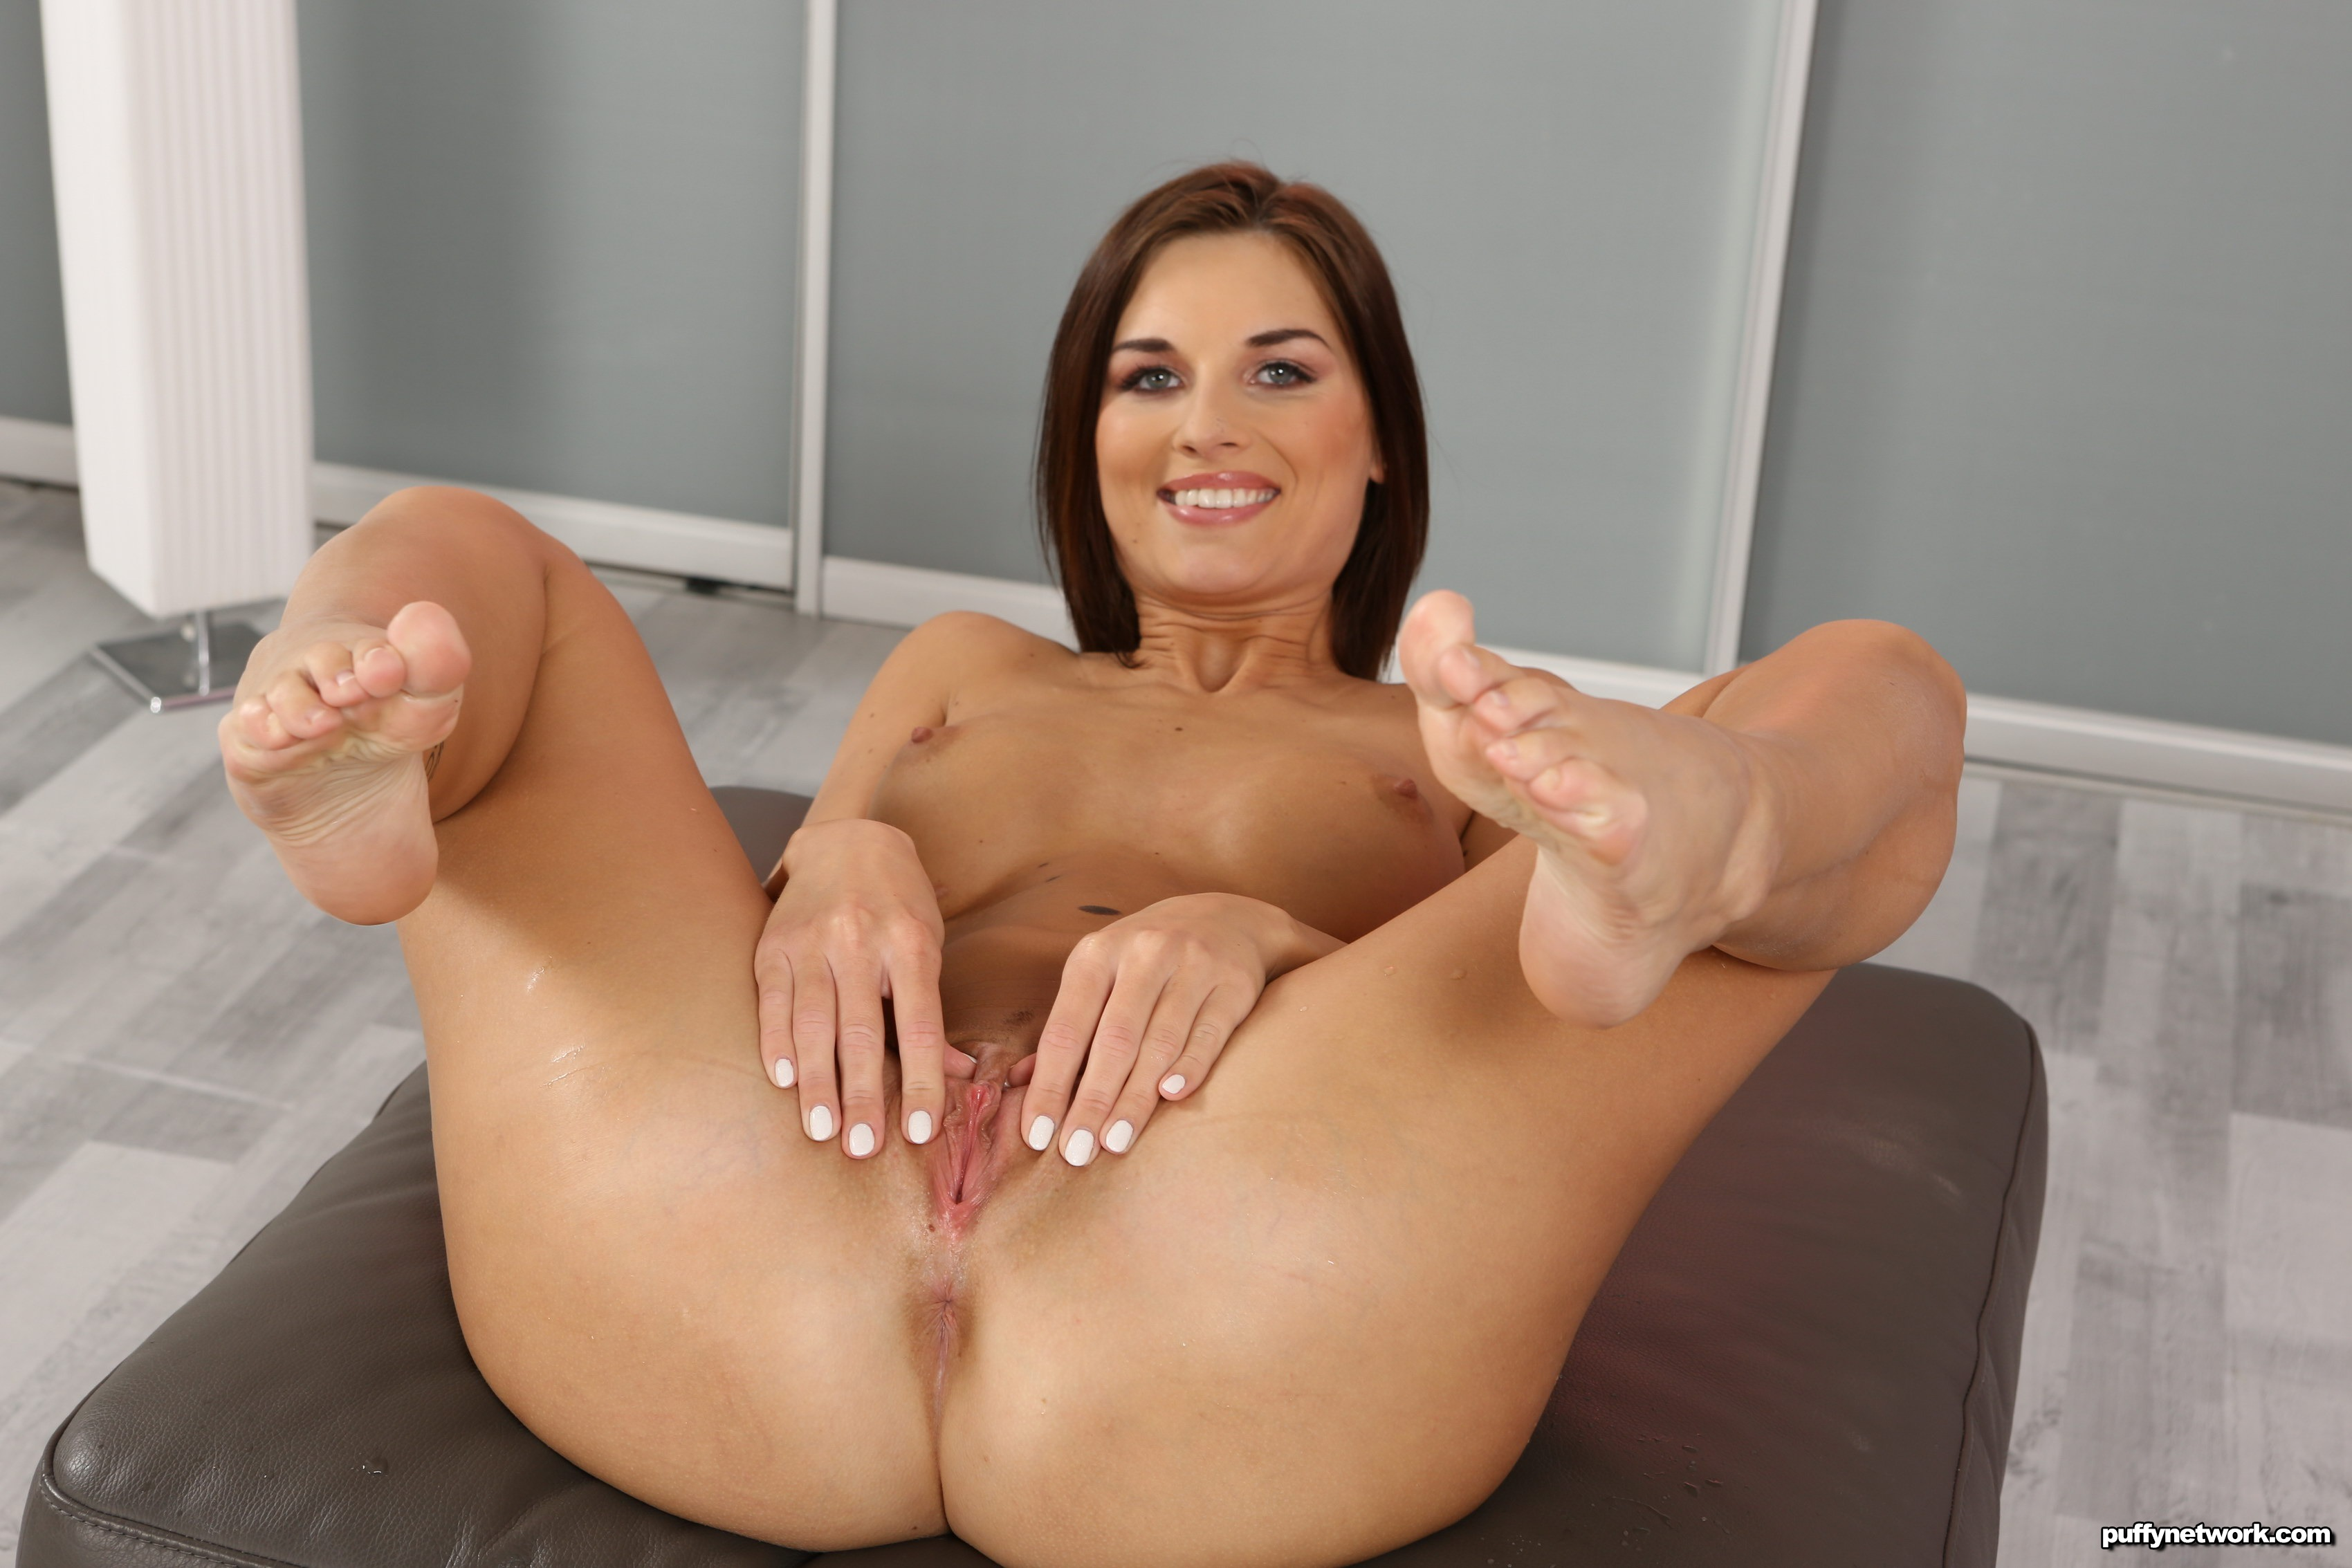 4 girls and their creampie suppliers - 2 part 4